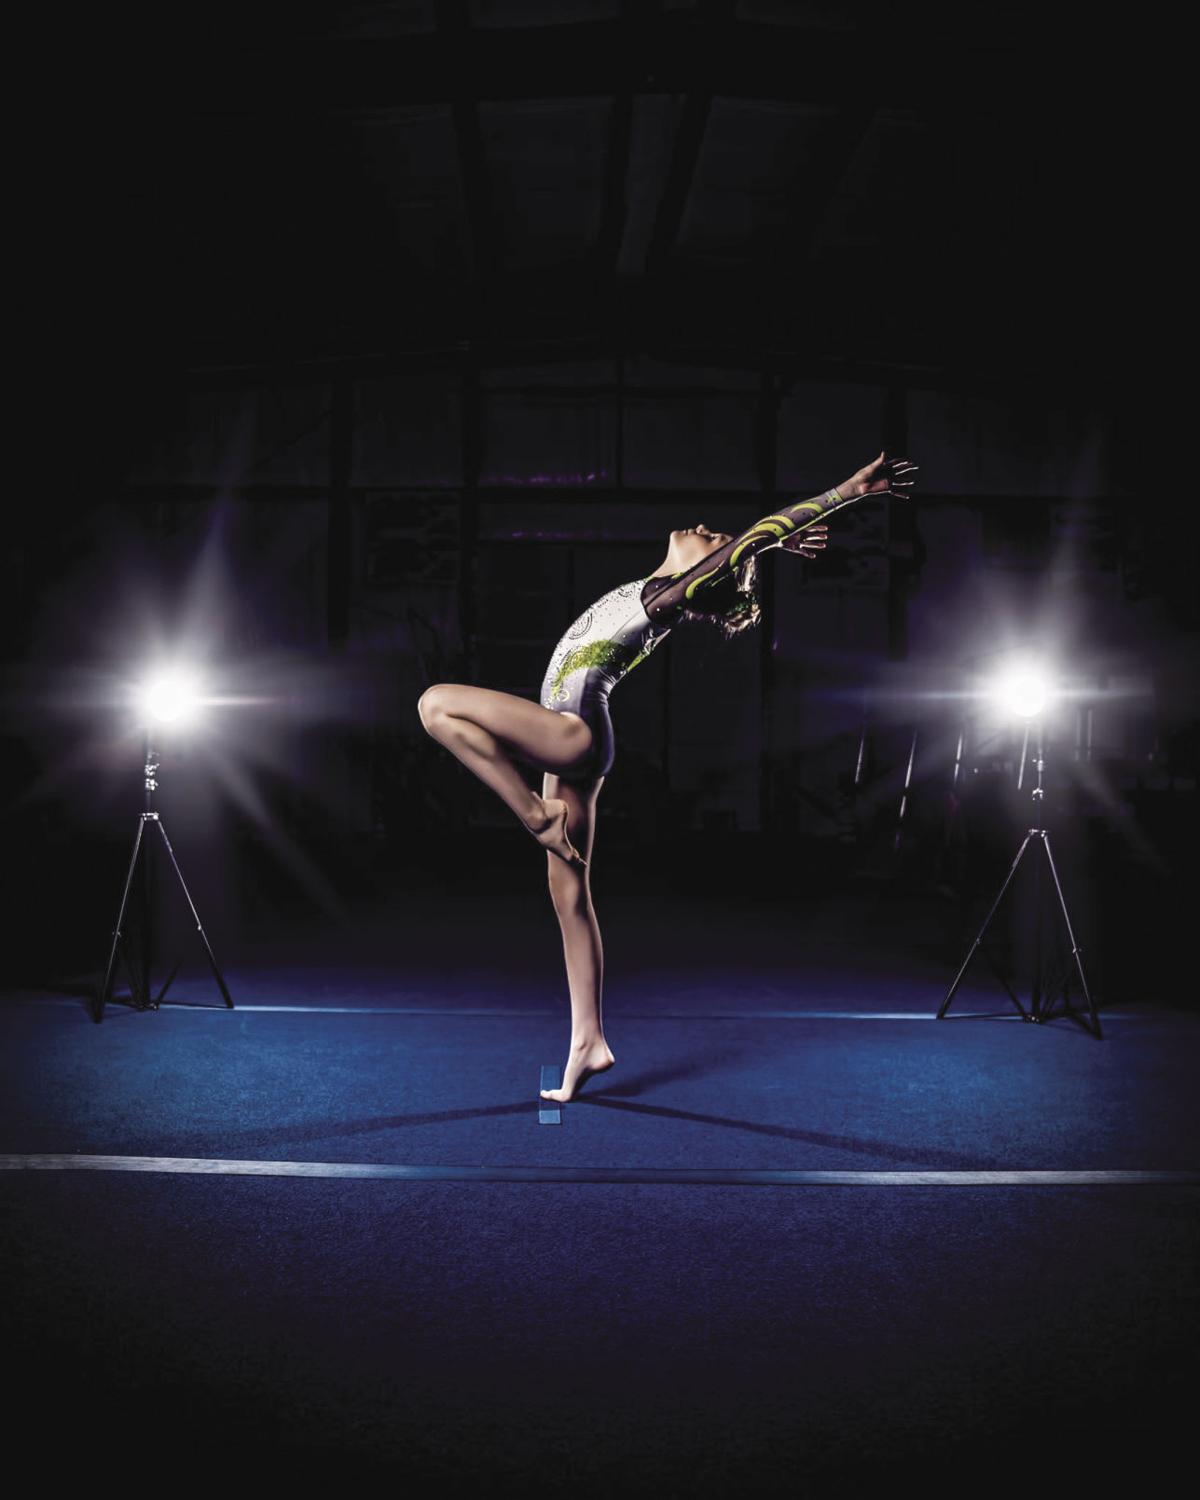 Leah's Gymnastics to hold first sanctioned event | News